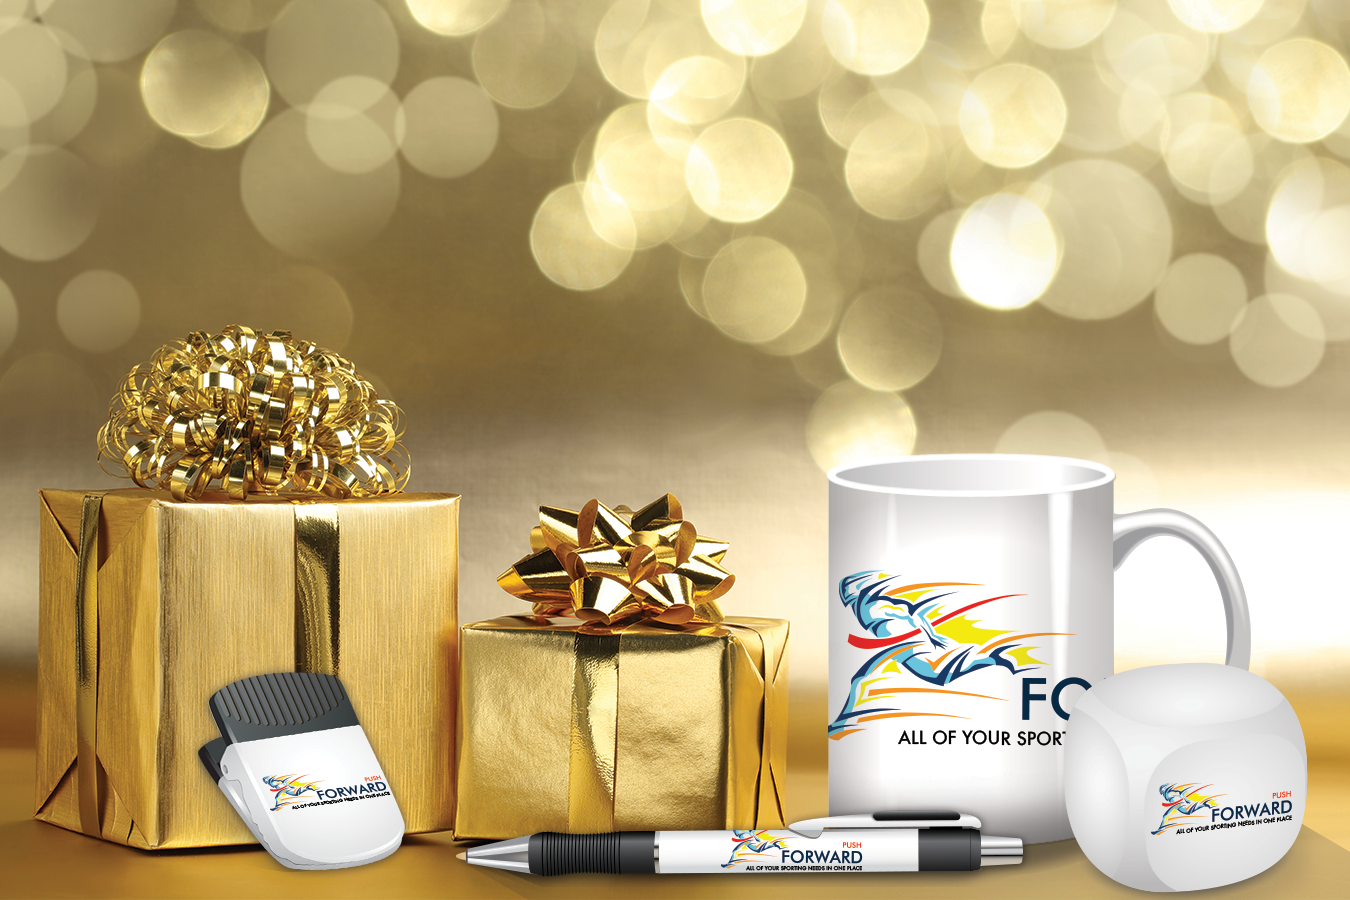 branded office supplies as holiday gifts